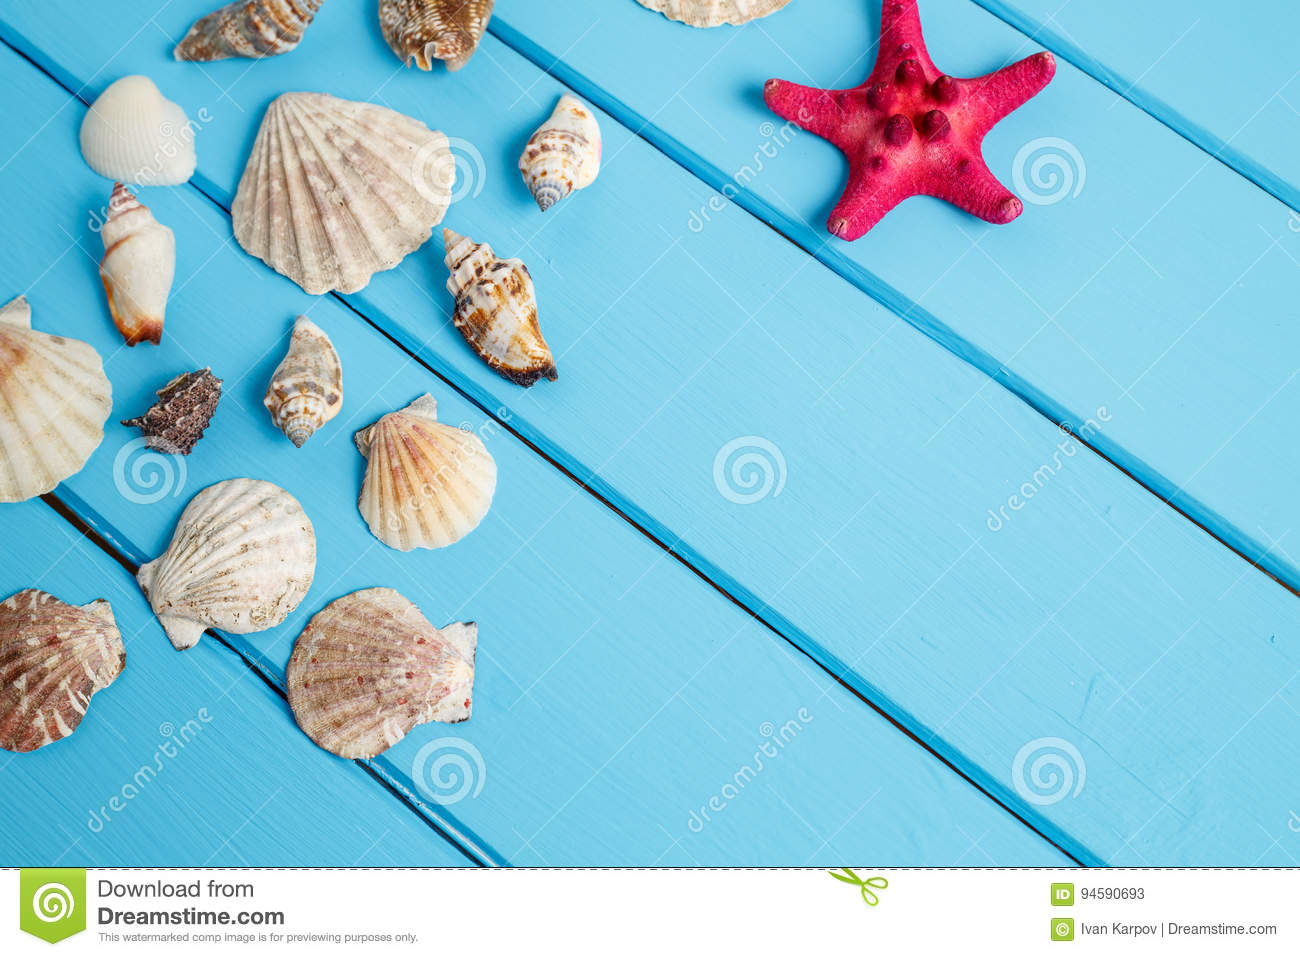 Sea star and shells on wooden blue background.